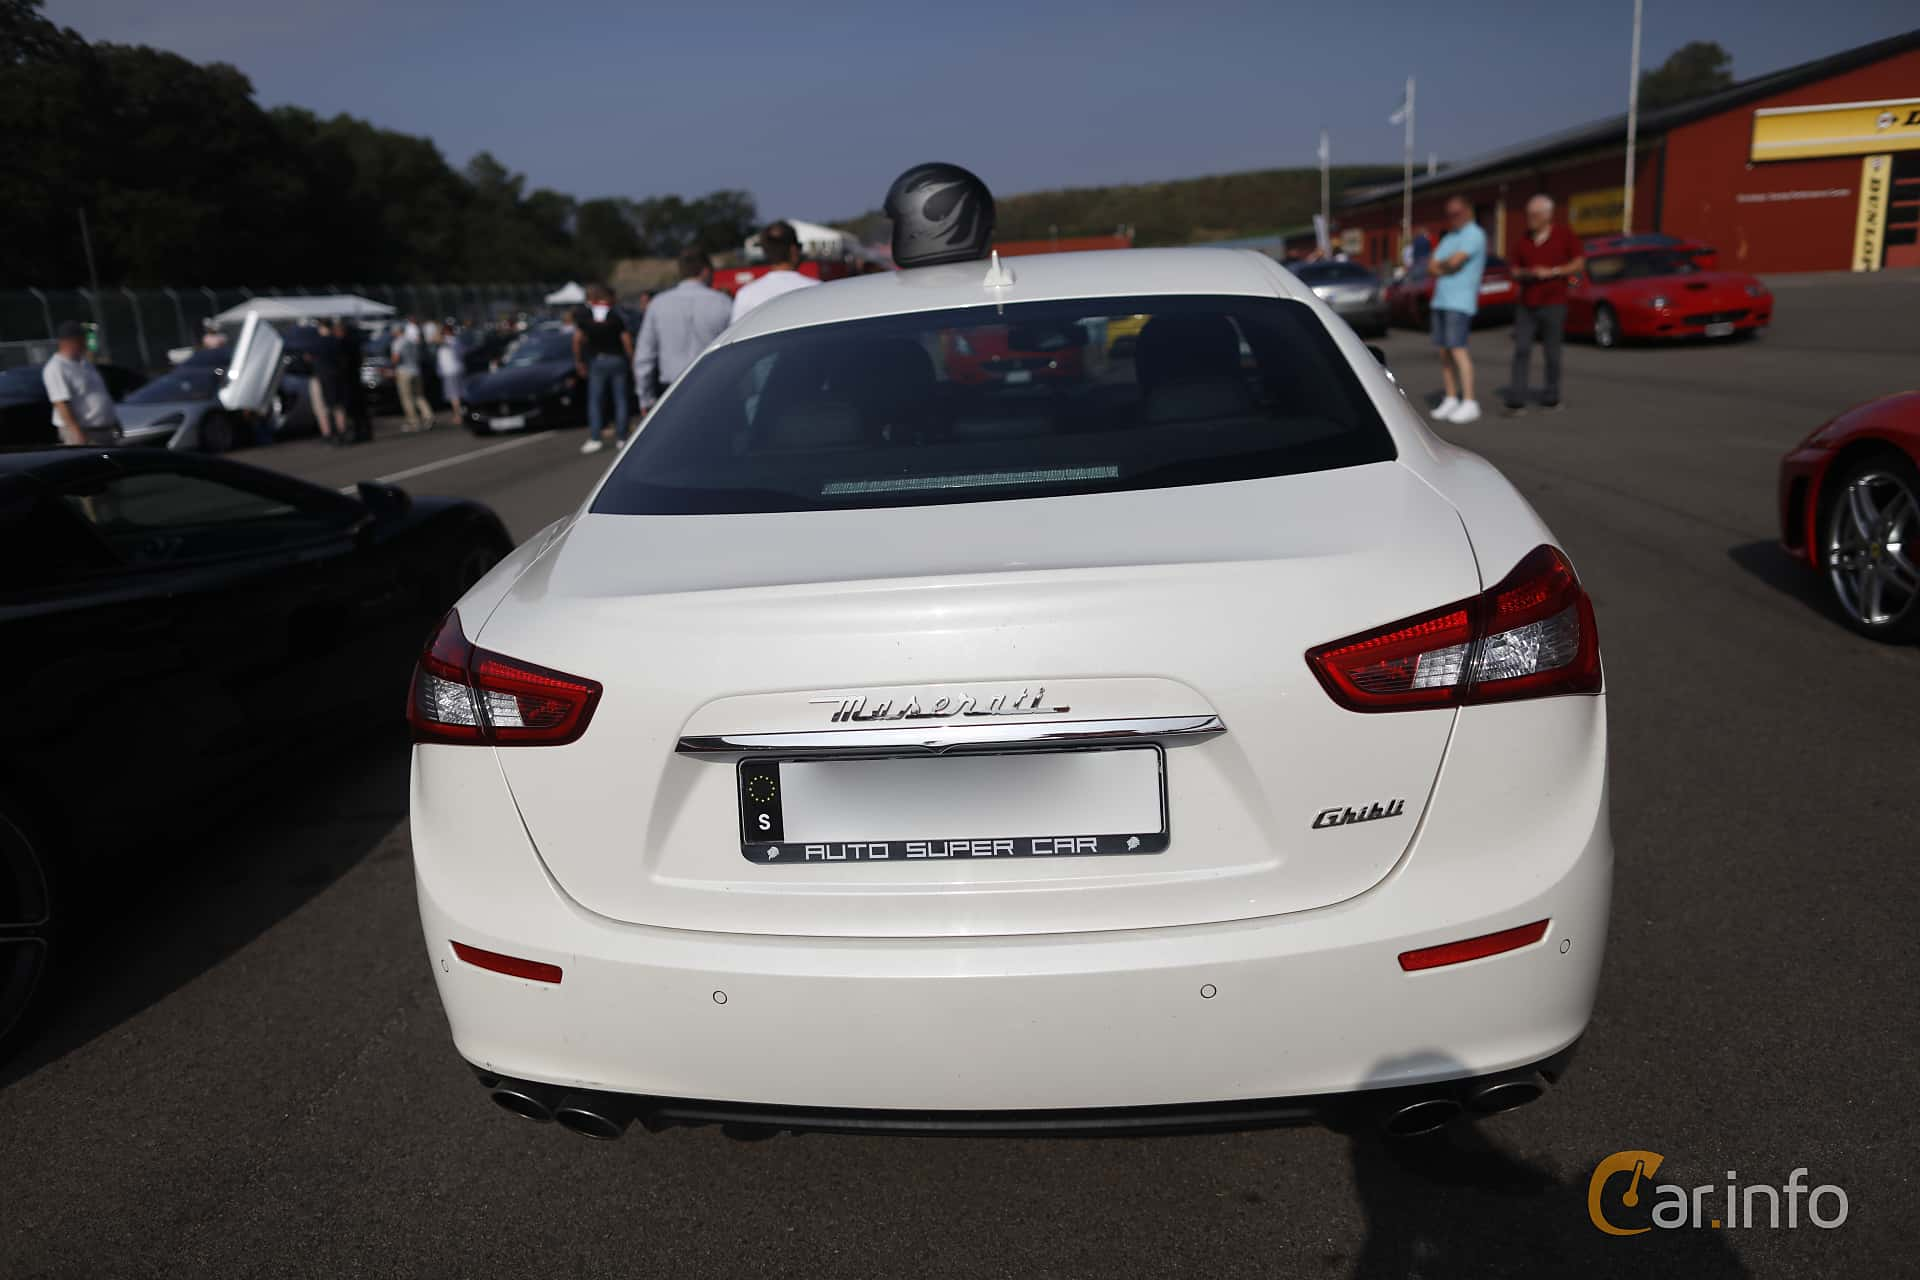 Maserati Ghibli S  Automatic, 410hp, 2014 at Autoropa Racing day Knutstorp 2019